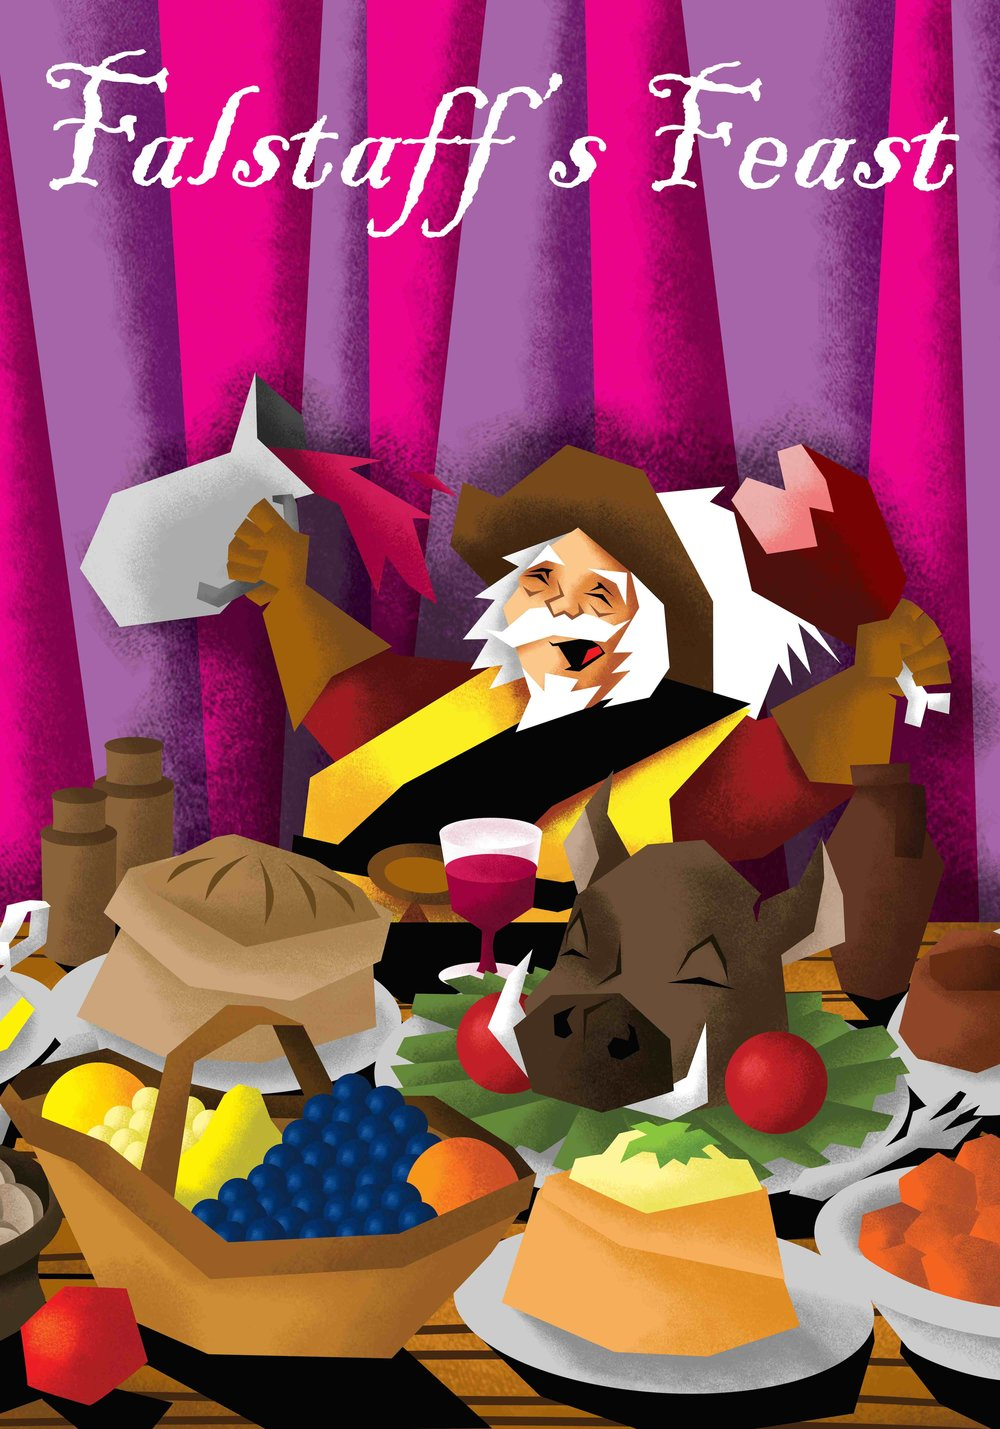 RGB - FALSTAFF'S FEAST - vertical copy.jpg